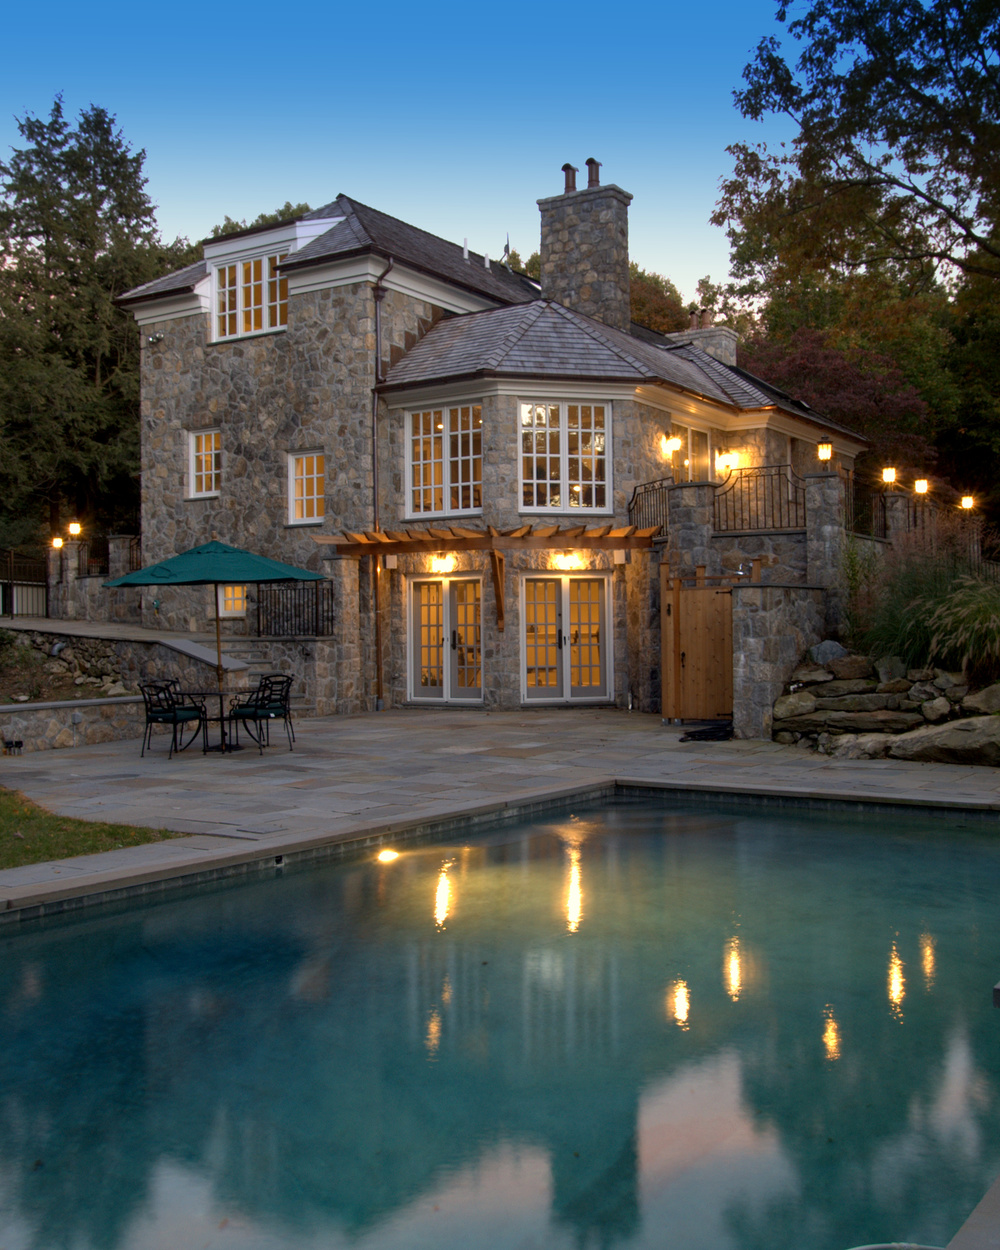 The original plan was to clad the house with purchased stone veneer, but to the delight of the owner, excavation for the new basement level found solid granite schist. The stone was harvested, and used to clad the entire house - on-site - by skilled masons.